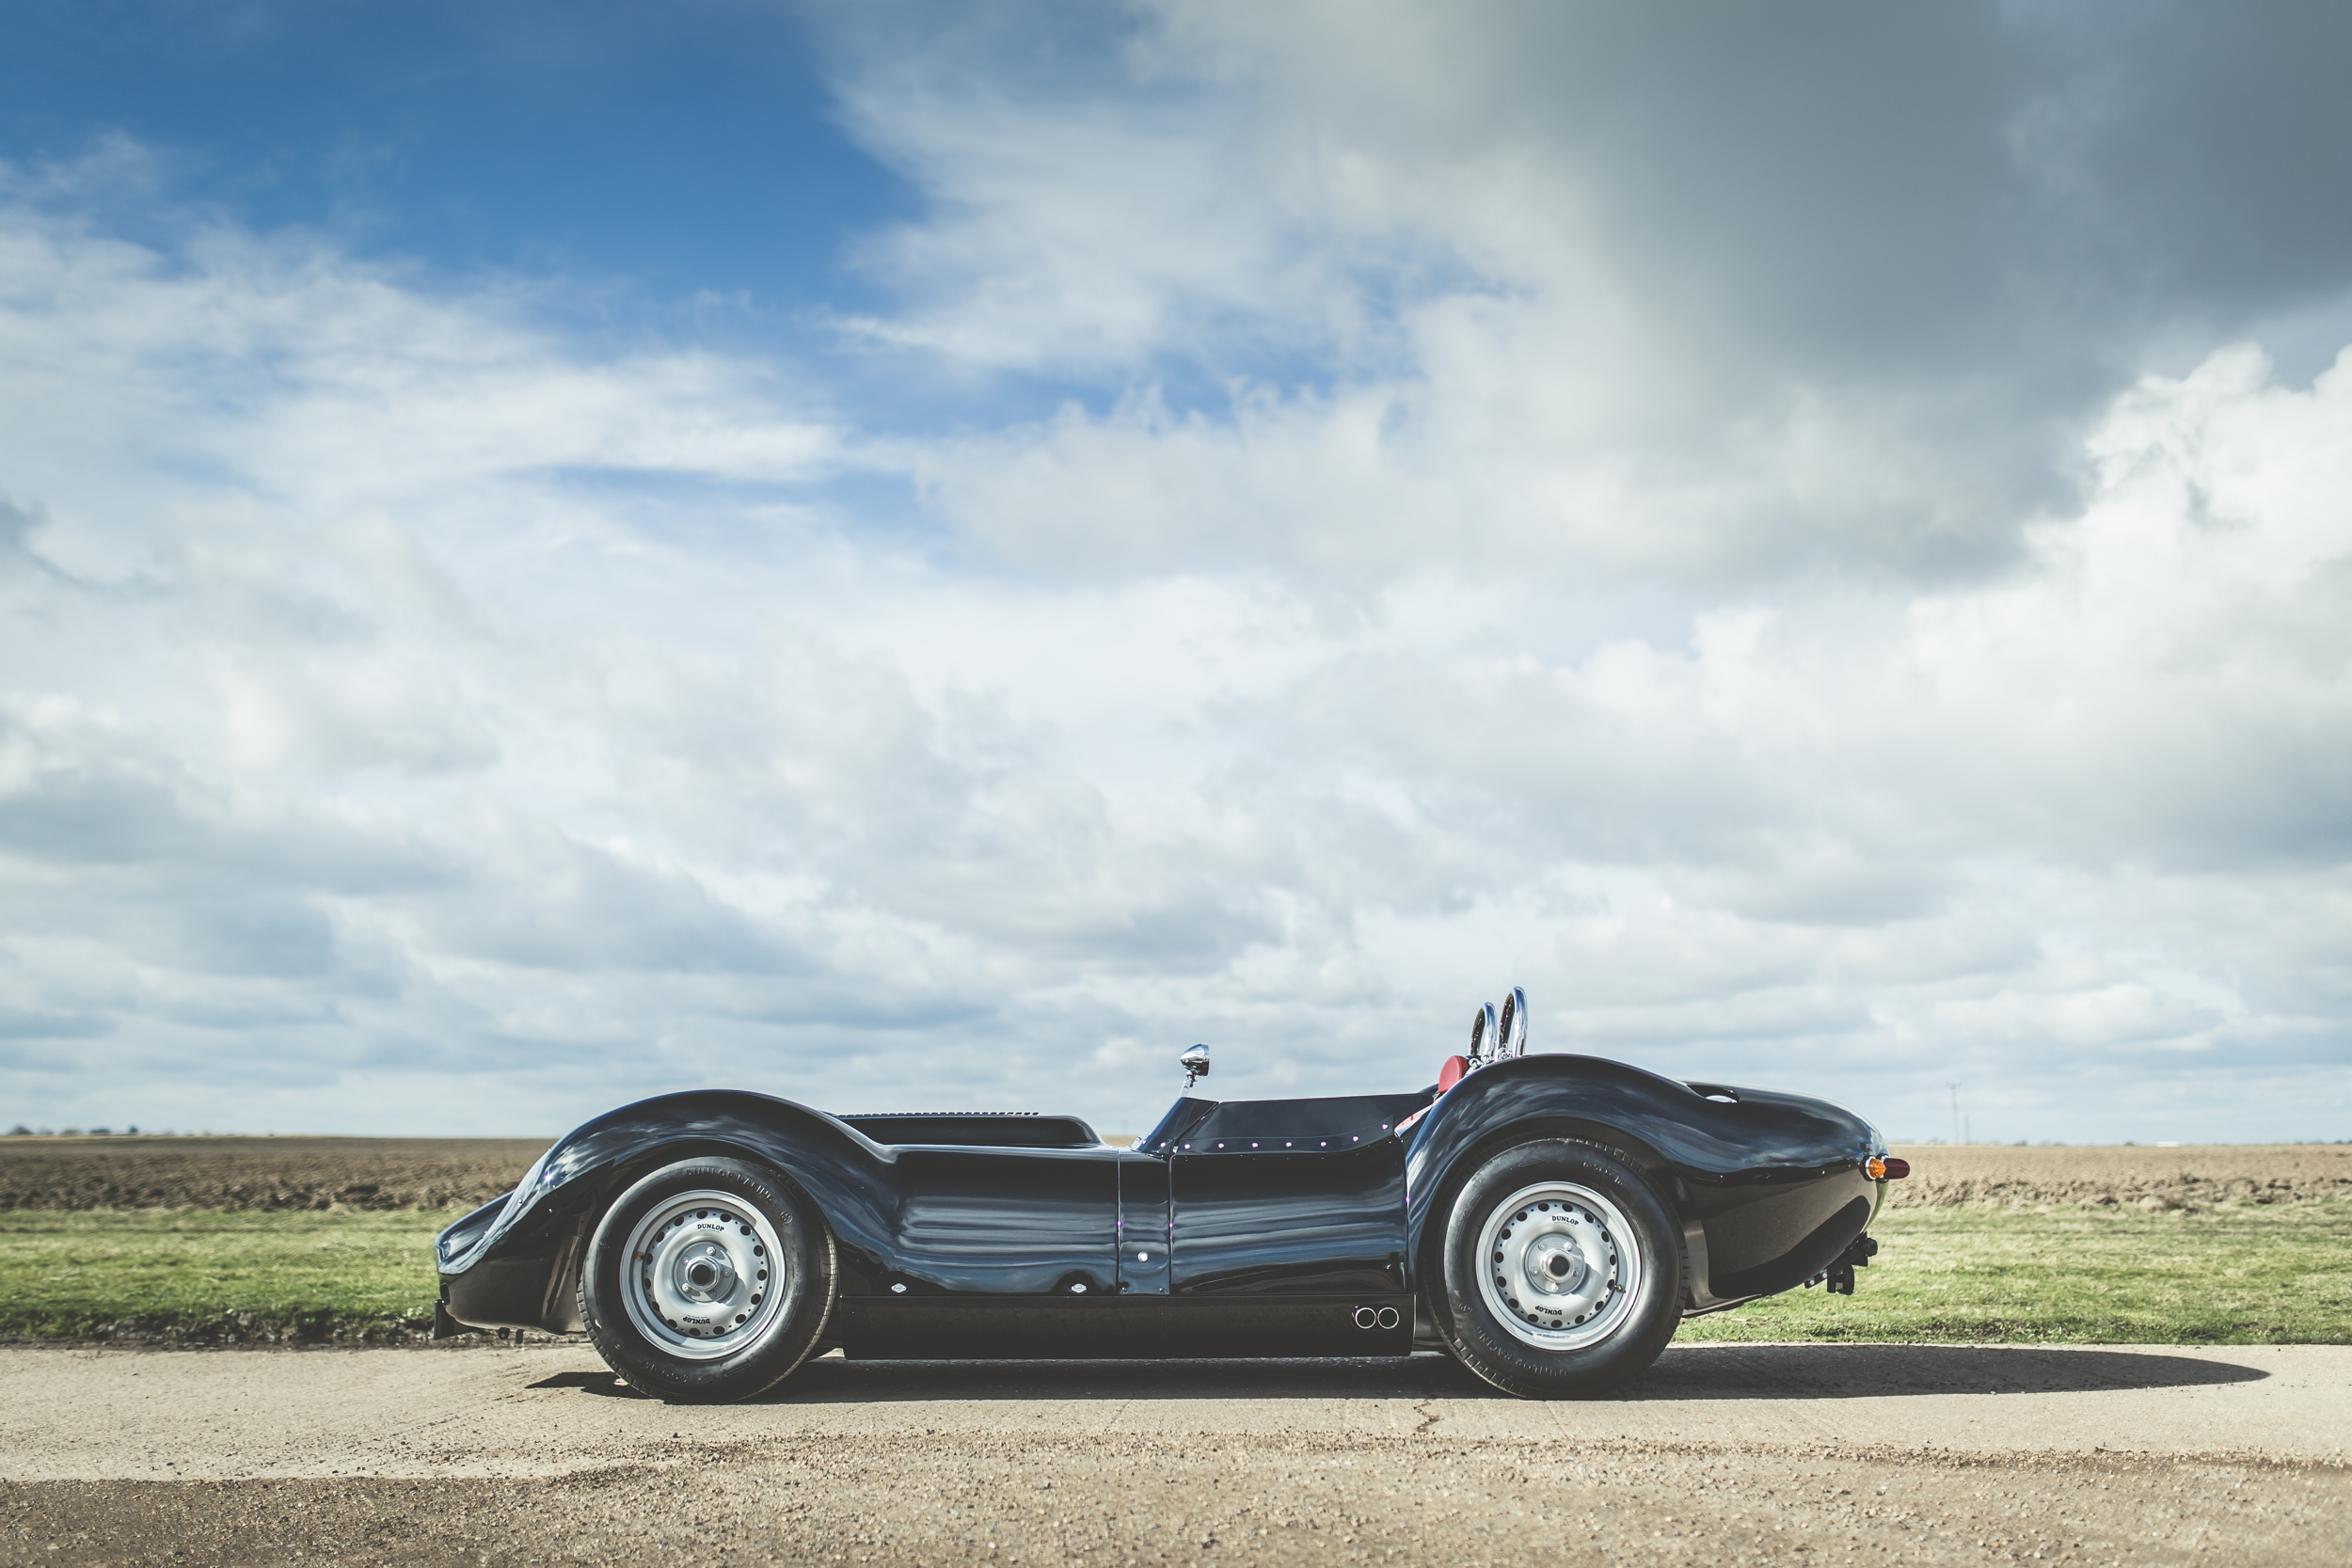 Lister Knobbly road-legal side